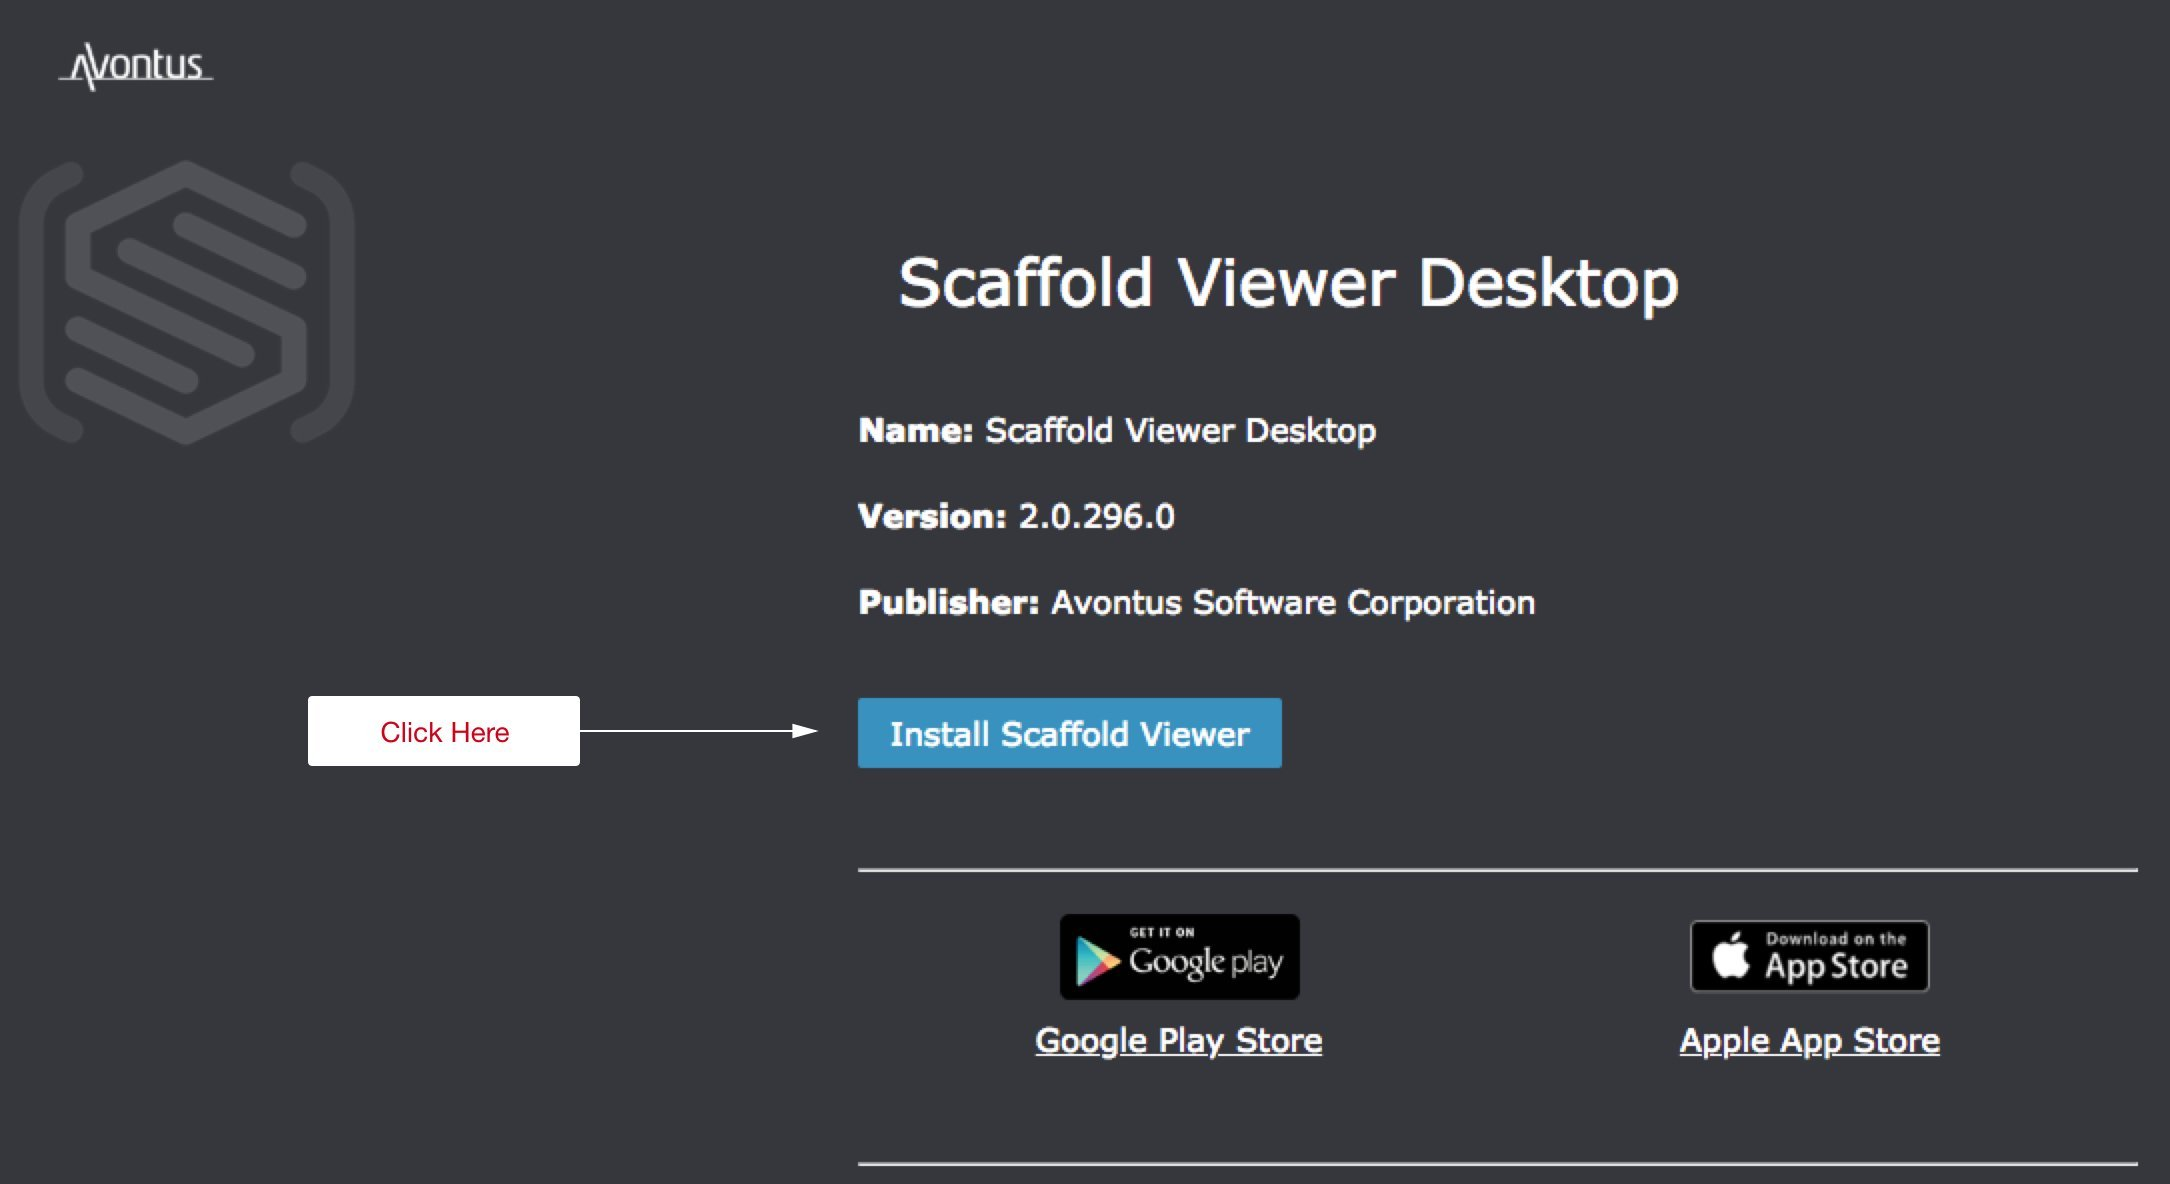 """Click """"Install Scaffold Viewer""""."""